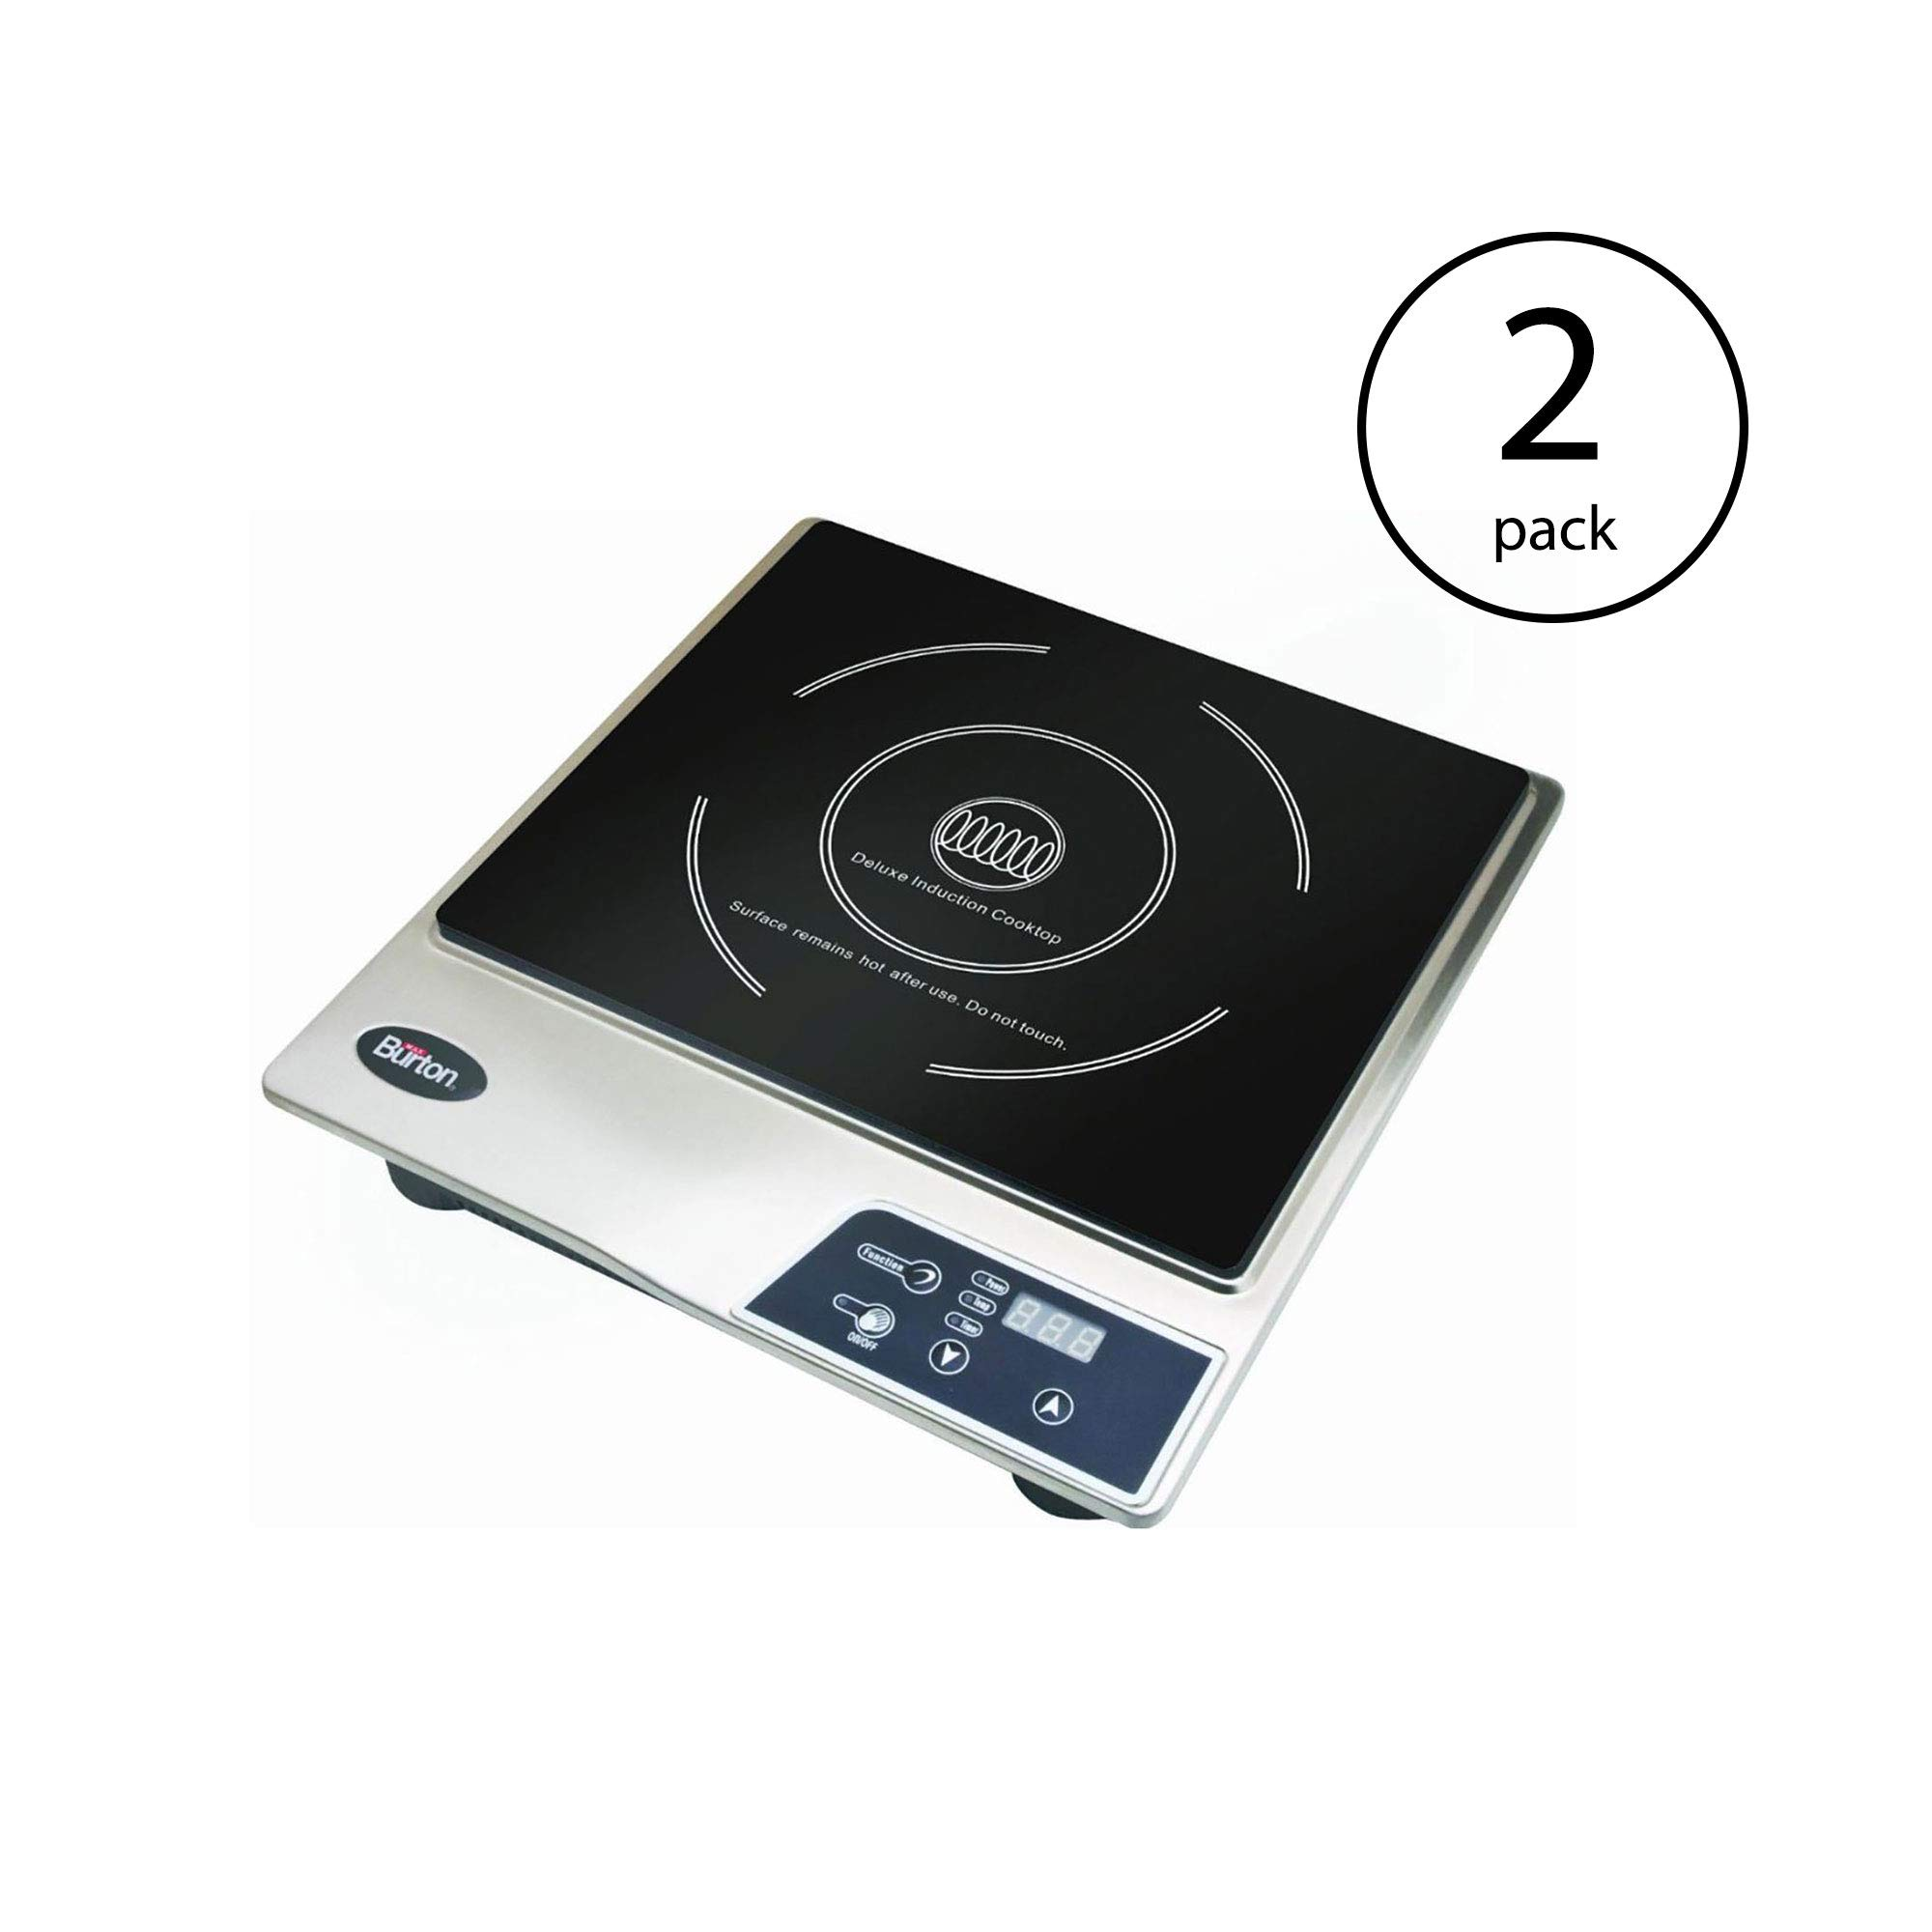 Max Burton Portable Stainless Steel Deluxe Countertop Induction Cooktop Burner (2 Pack) by Sunbeam (Image #1)